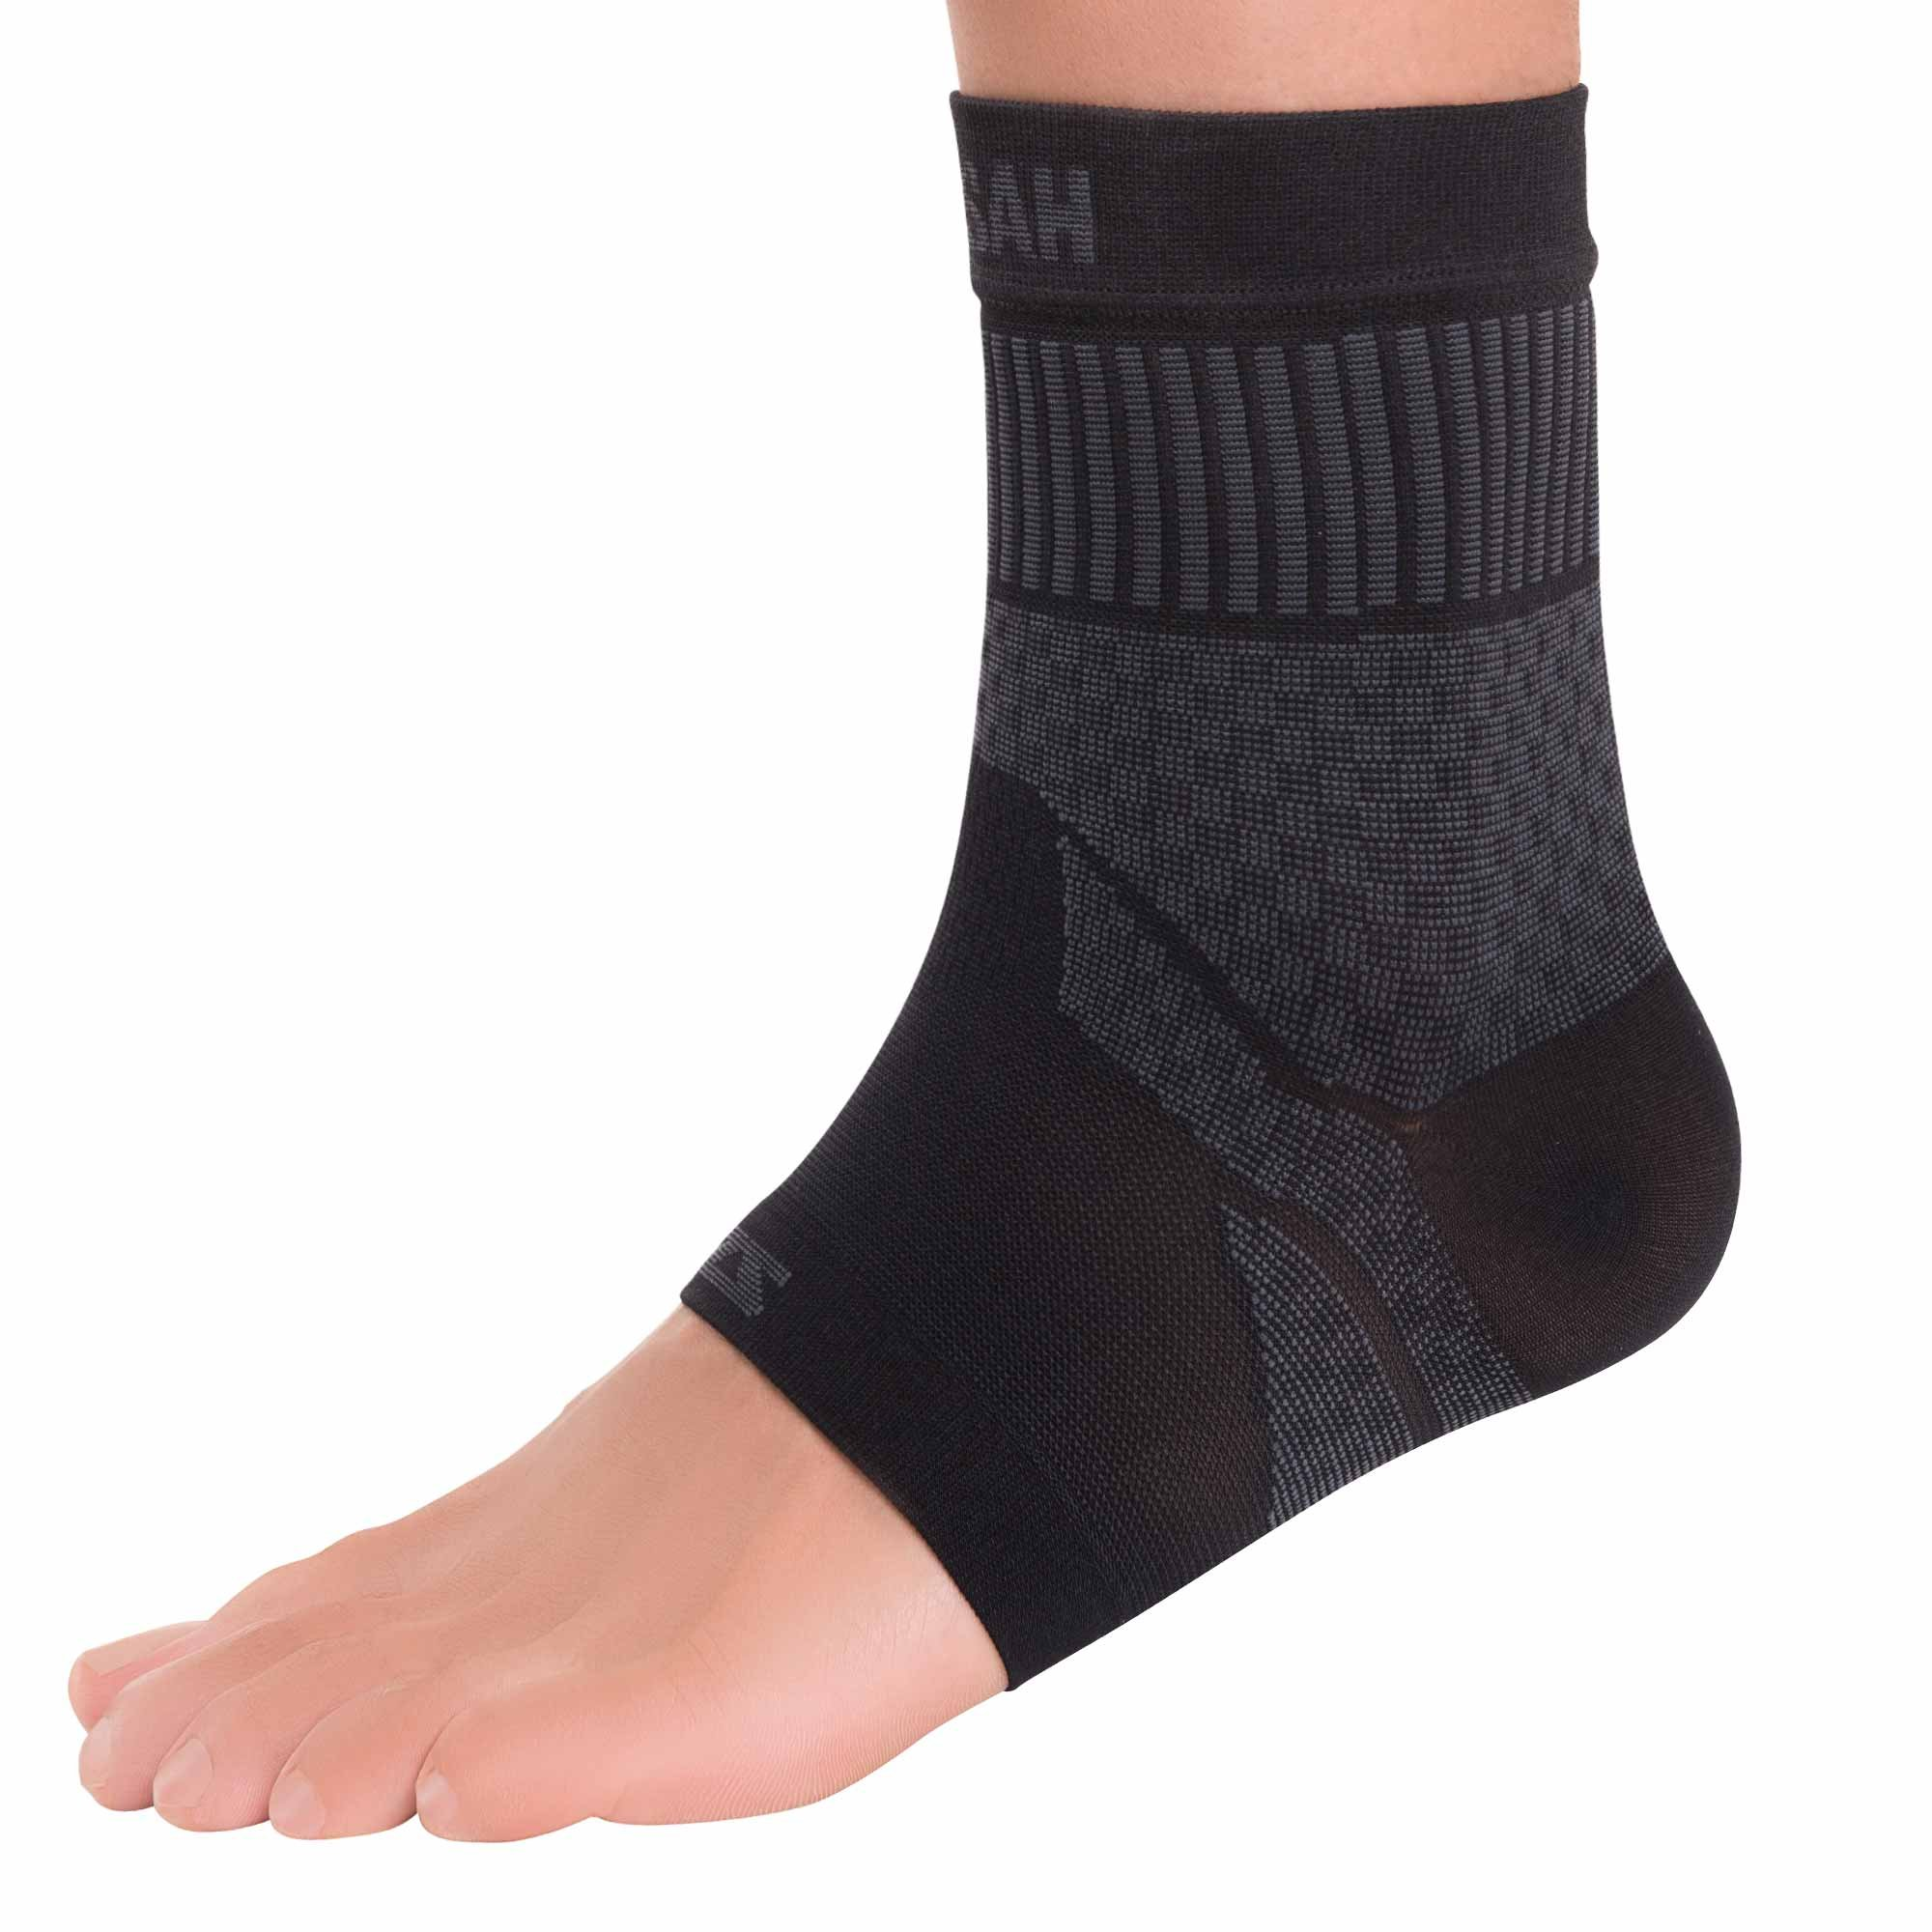 Zensah Ankle Support - Compression Ankle Brace - Great for Running, Soccer, Volleyball, Sports - Ankle Sleeve Helps Sprains, Tendonitis, Pain , Black, Medium